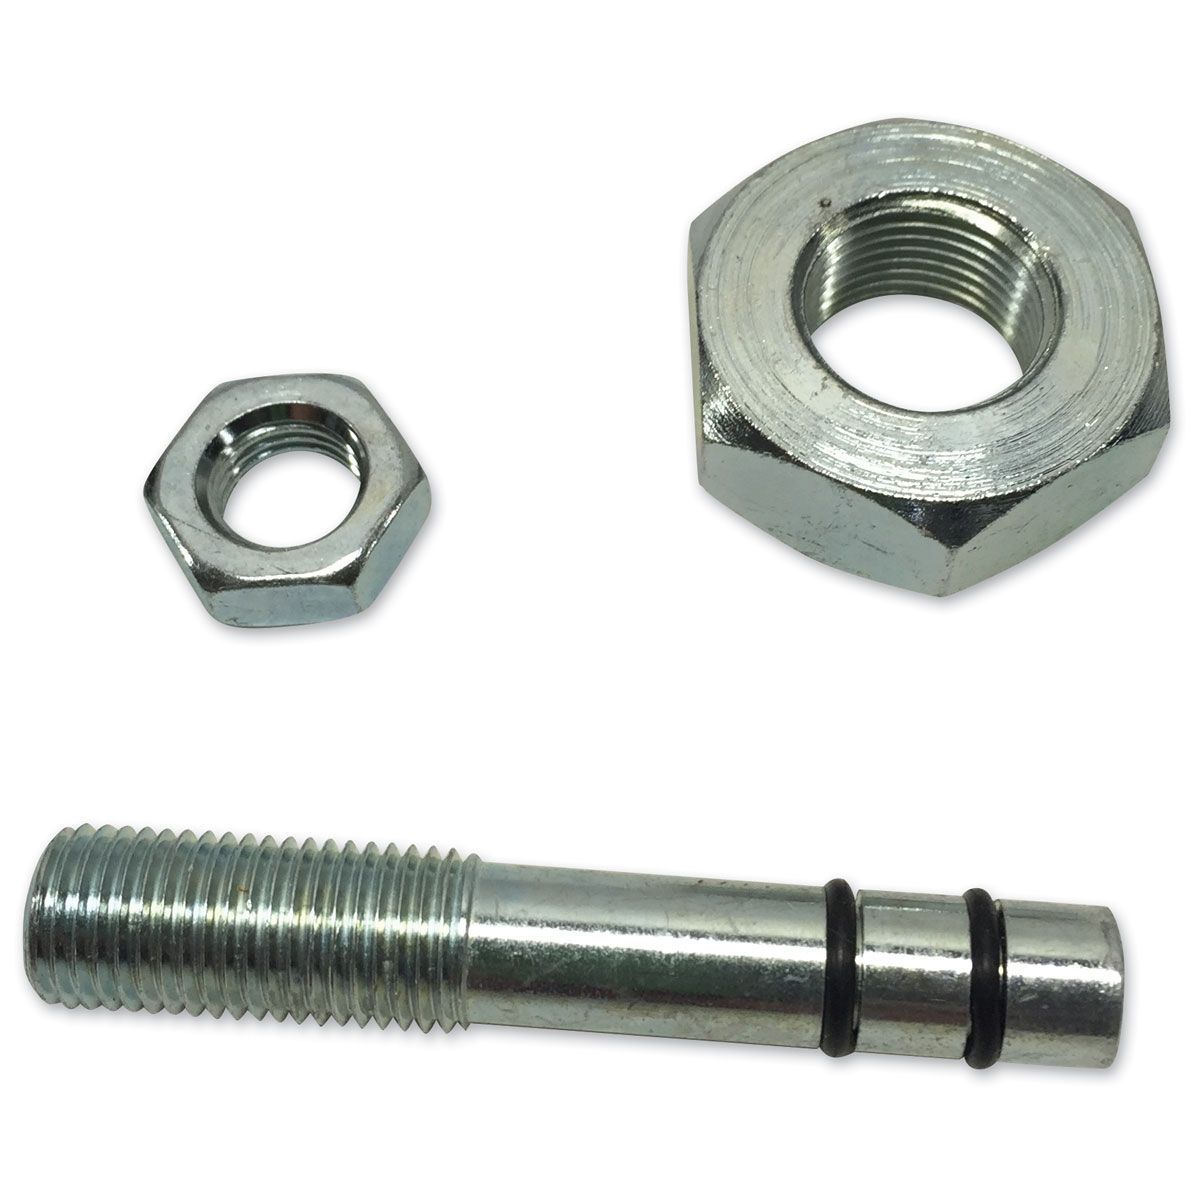 BDL O-Ringed Adjustment Screw with Nut